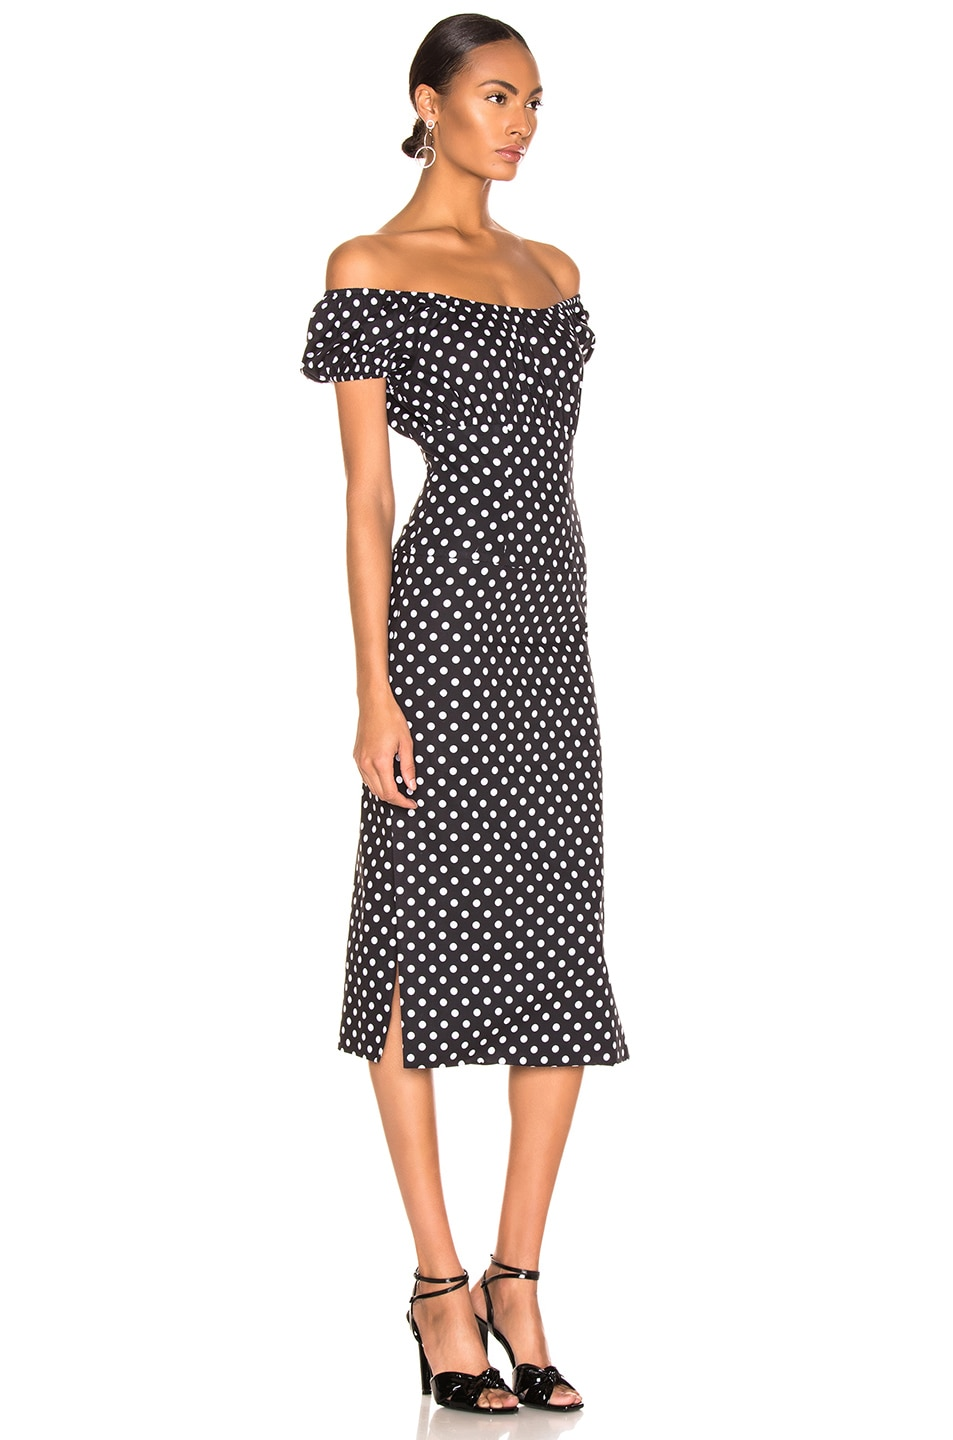 a0150ea4b6e8 Image 3 of Caroline Constas Calla Dress in Black & White